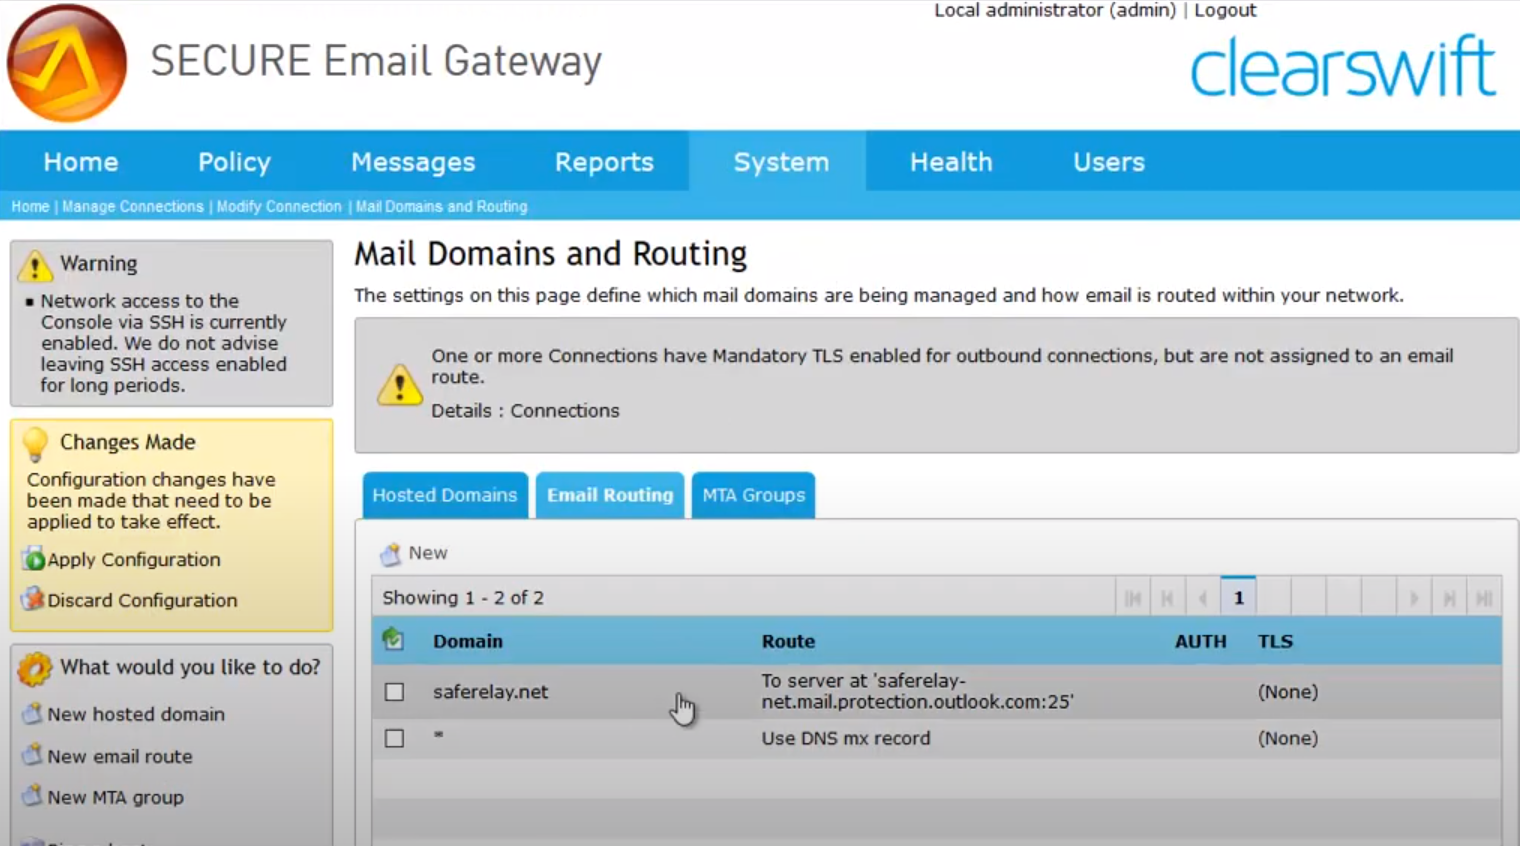 Clearswift SECURE Email Gateway Logiciel - 1